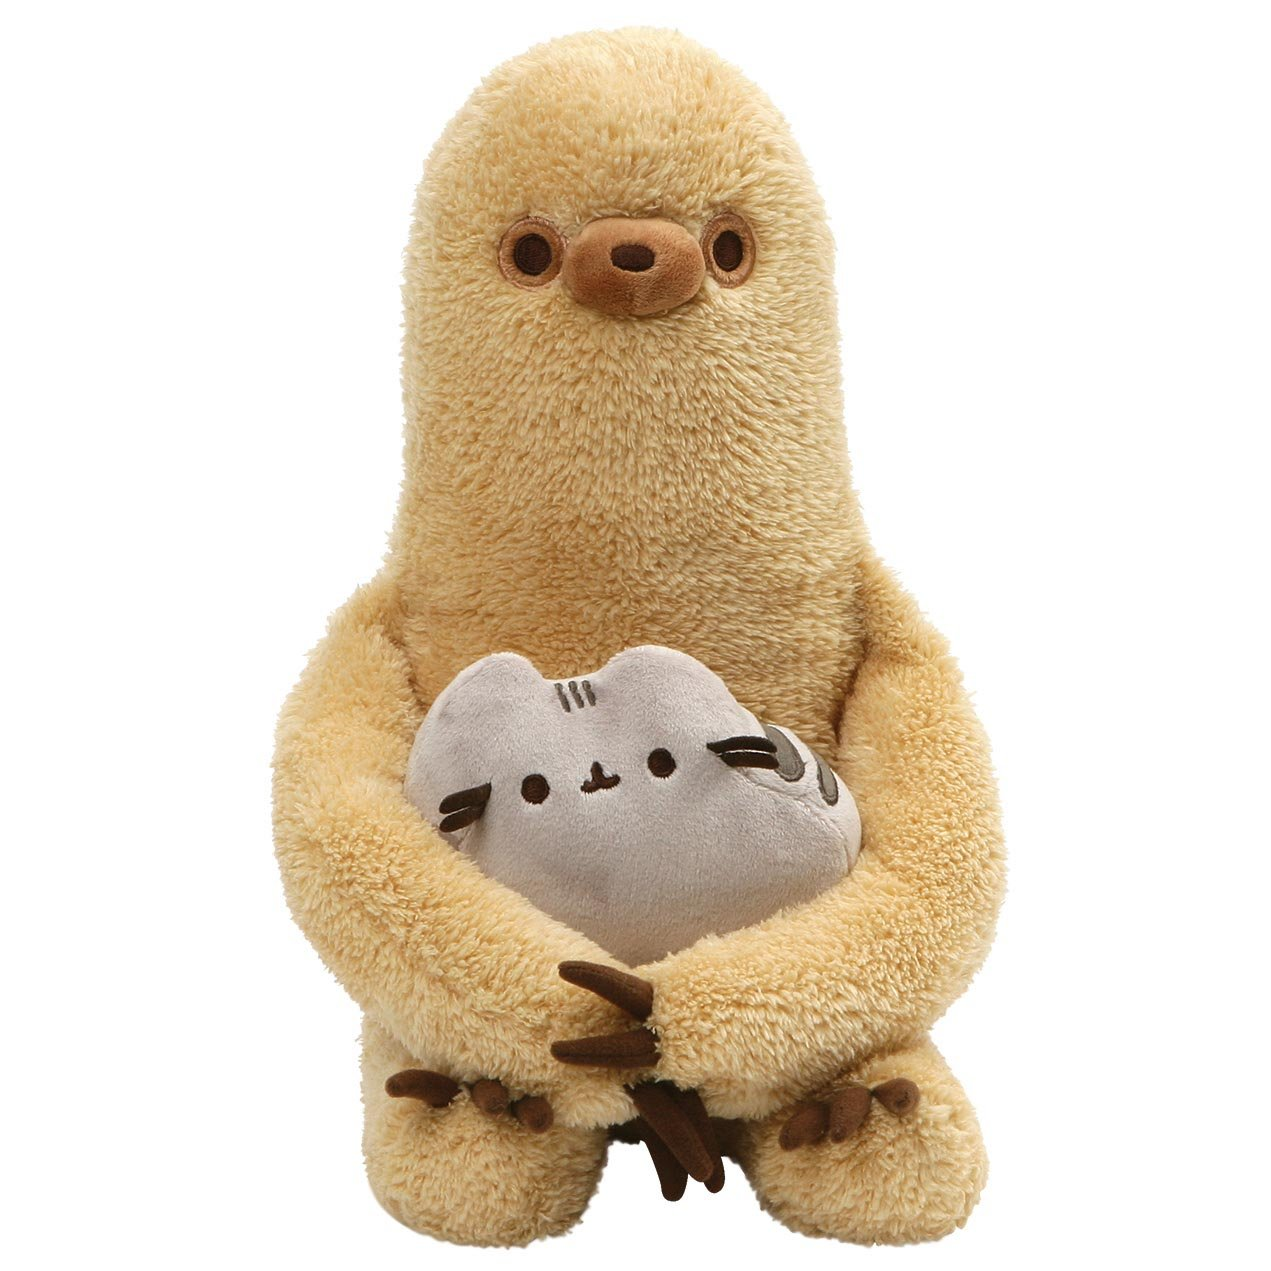 Gund Gund-4061309 Pusheen Sloth 4061309, Multicoloured, Taille Unique